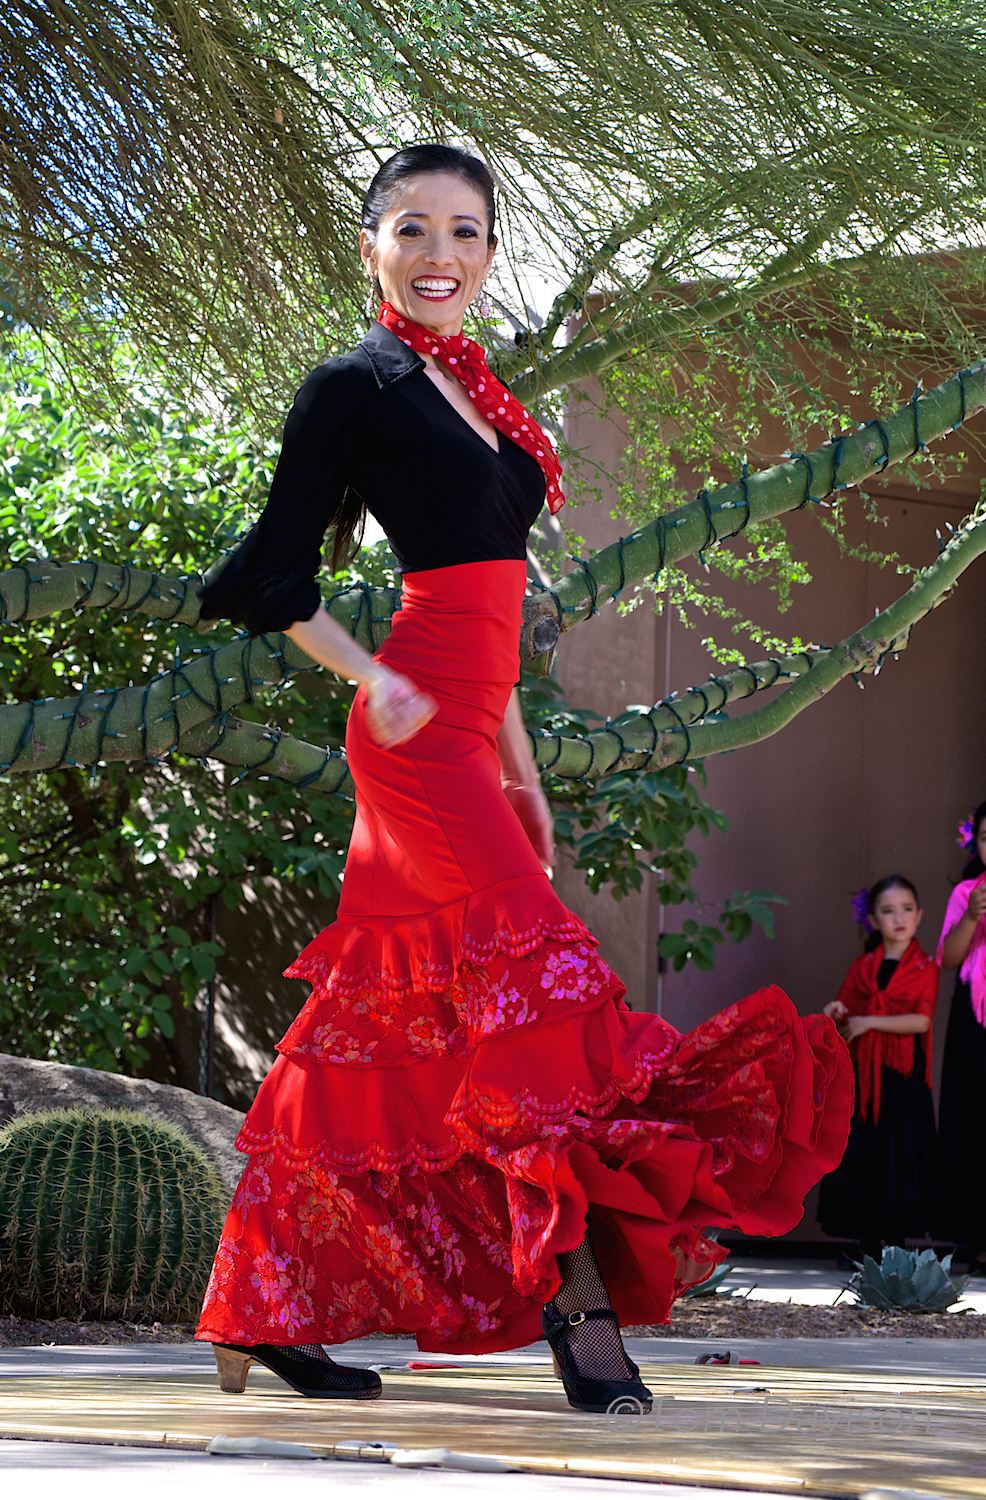 If I thought flamenco dancing would make me look like that I would spend hours a day at her school.